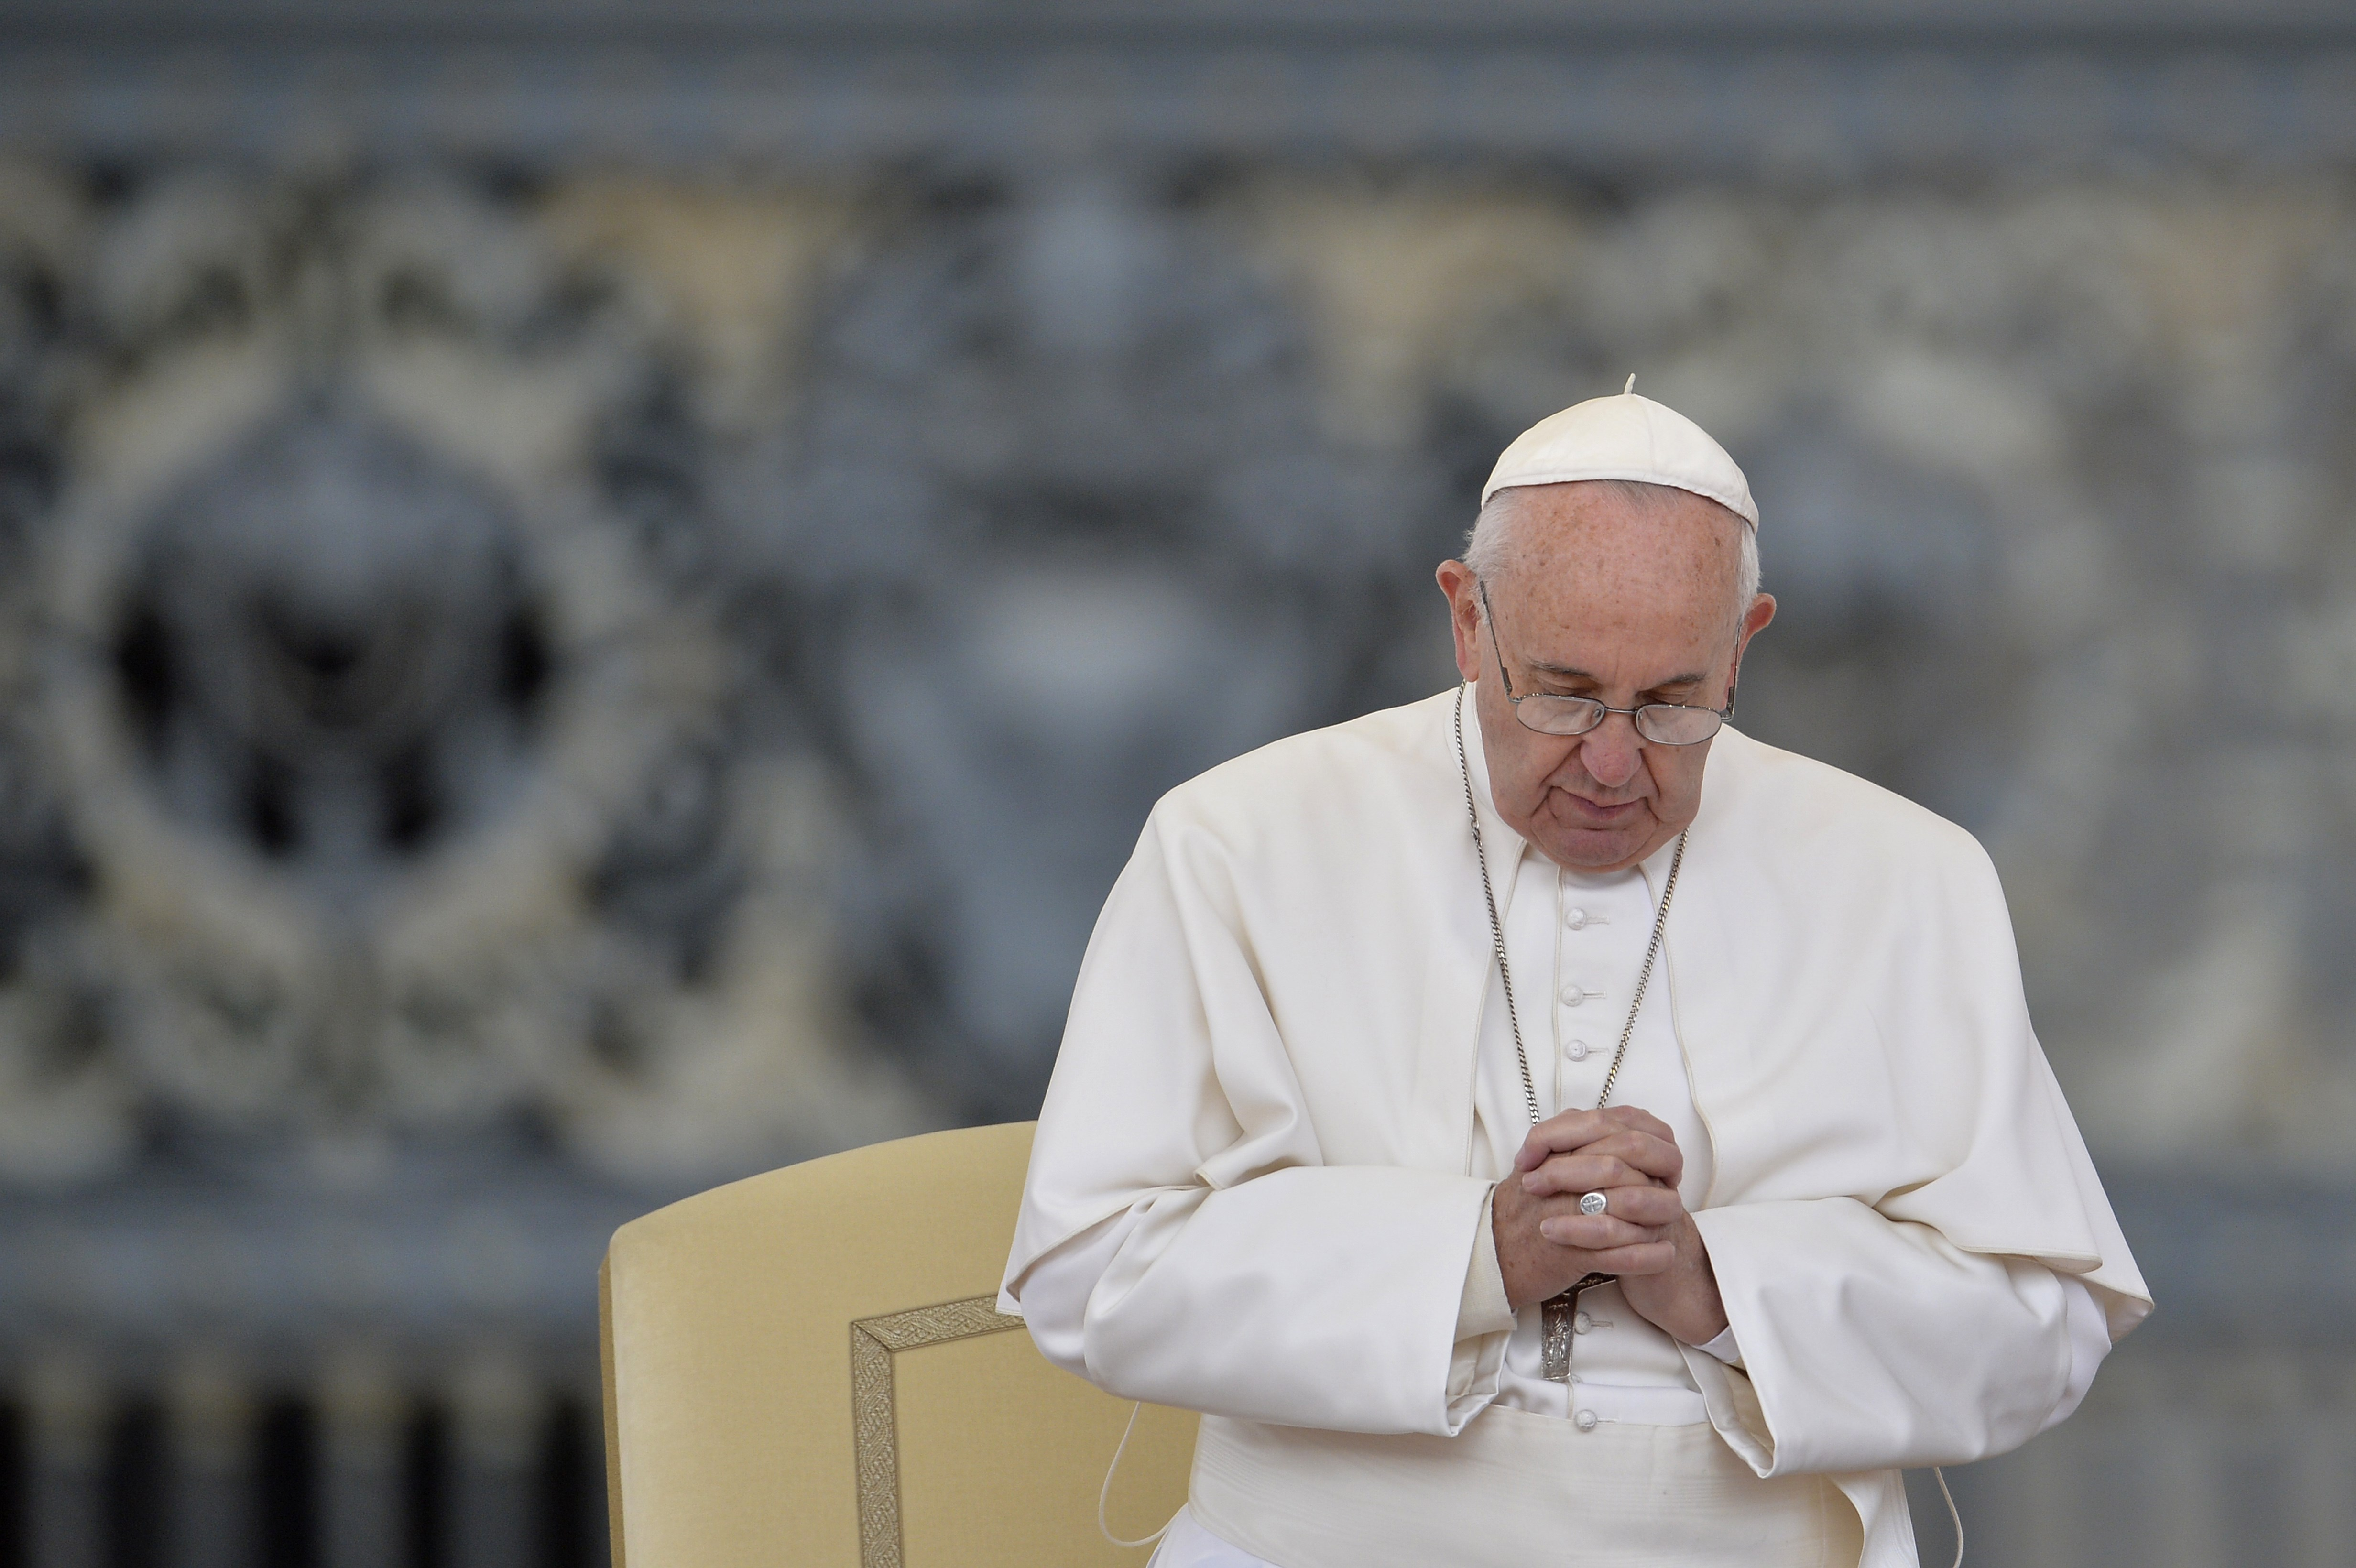 Pope Francis prays during his weekly general audience at St Peter's square on Sept. 30, 2015 at the Vatican.